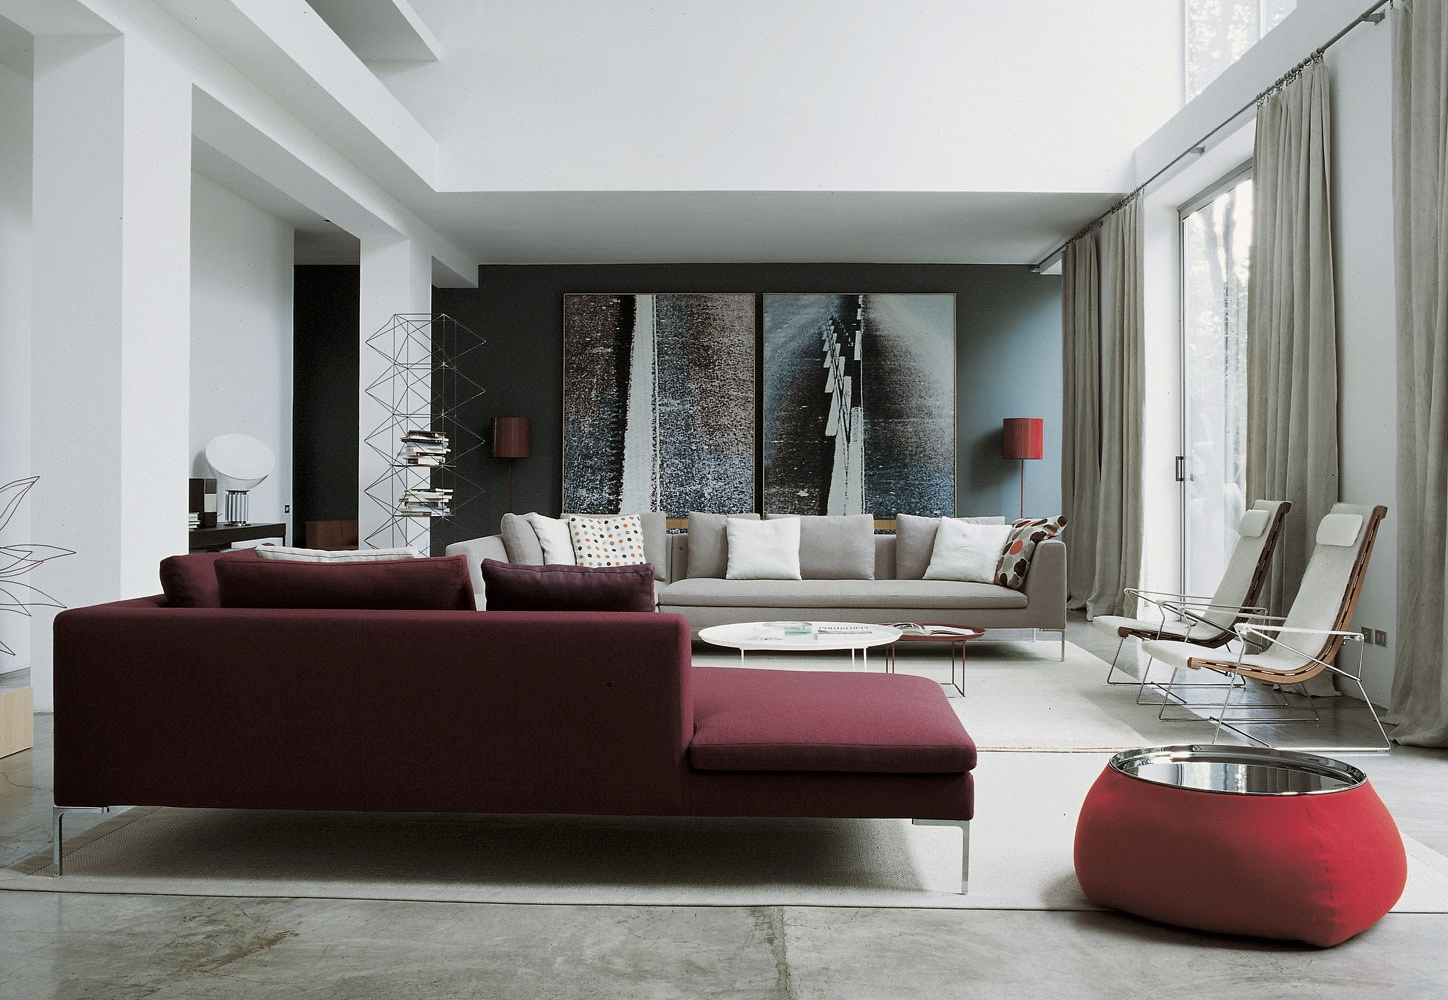 Burgundy sofa interior design ideas for Sofa interior design